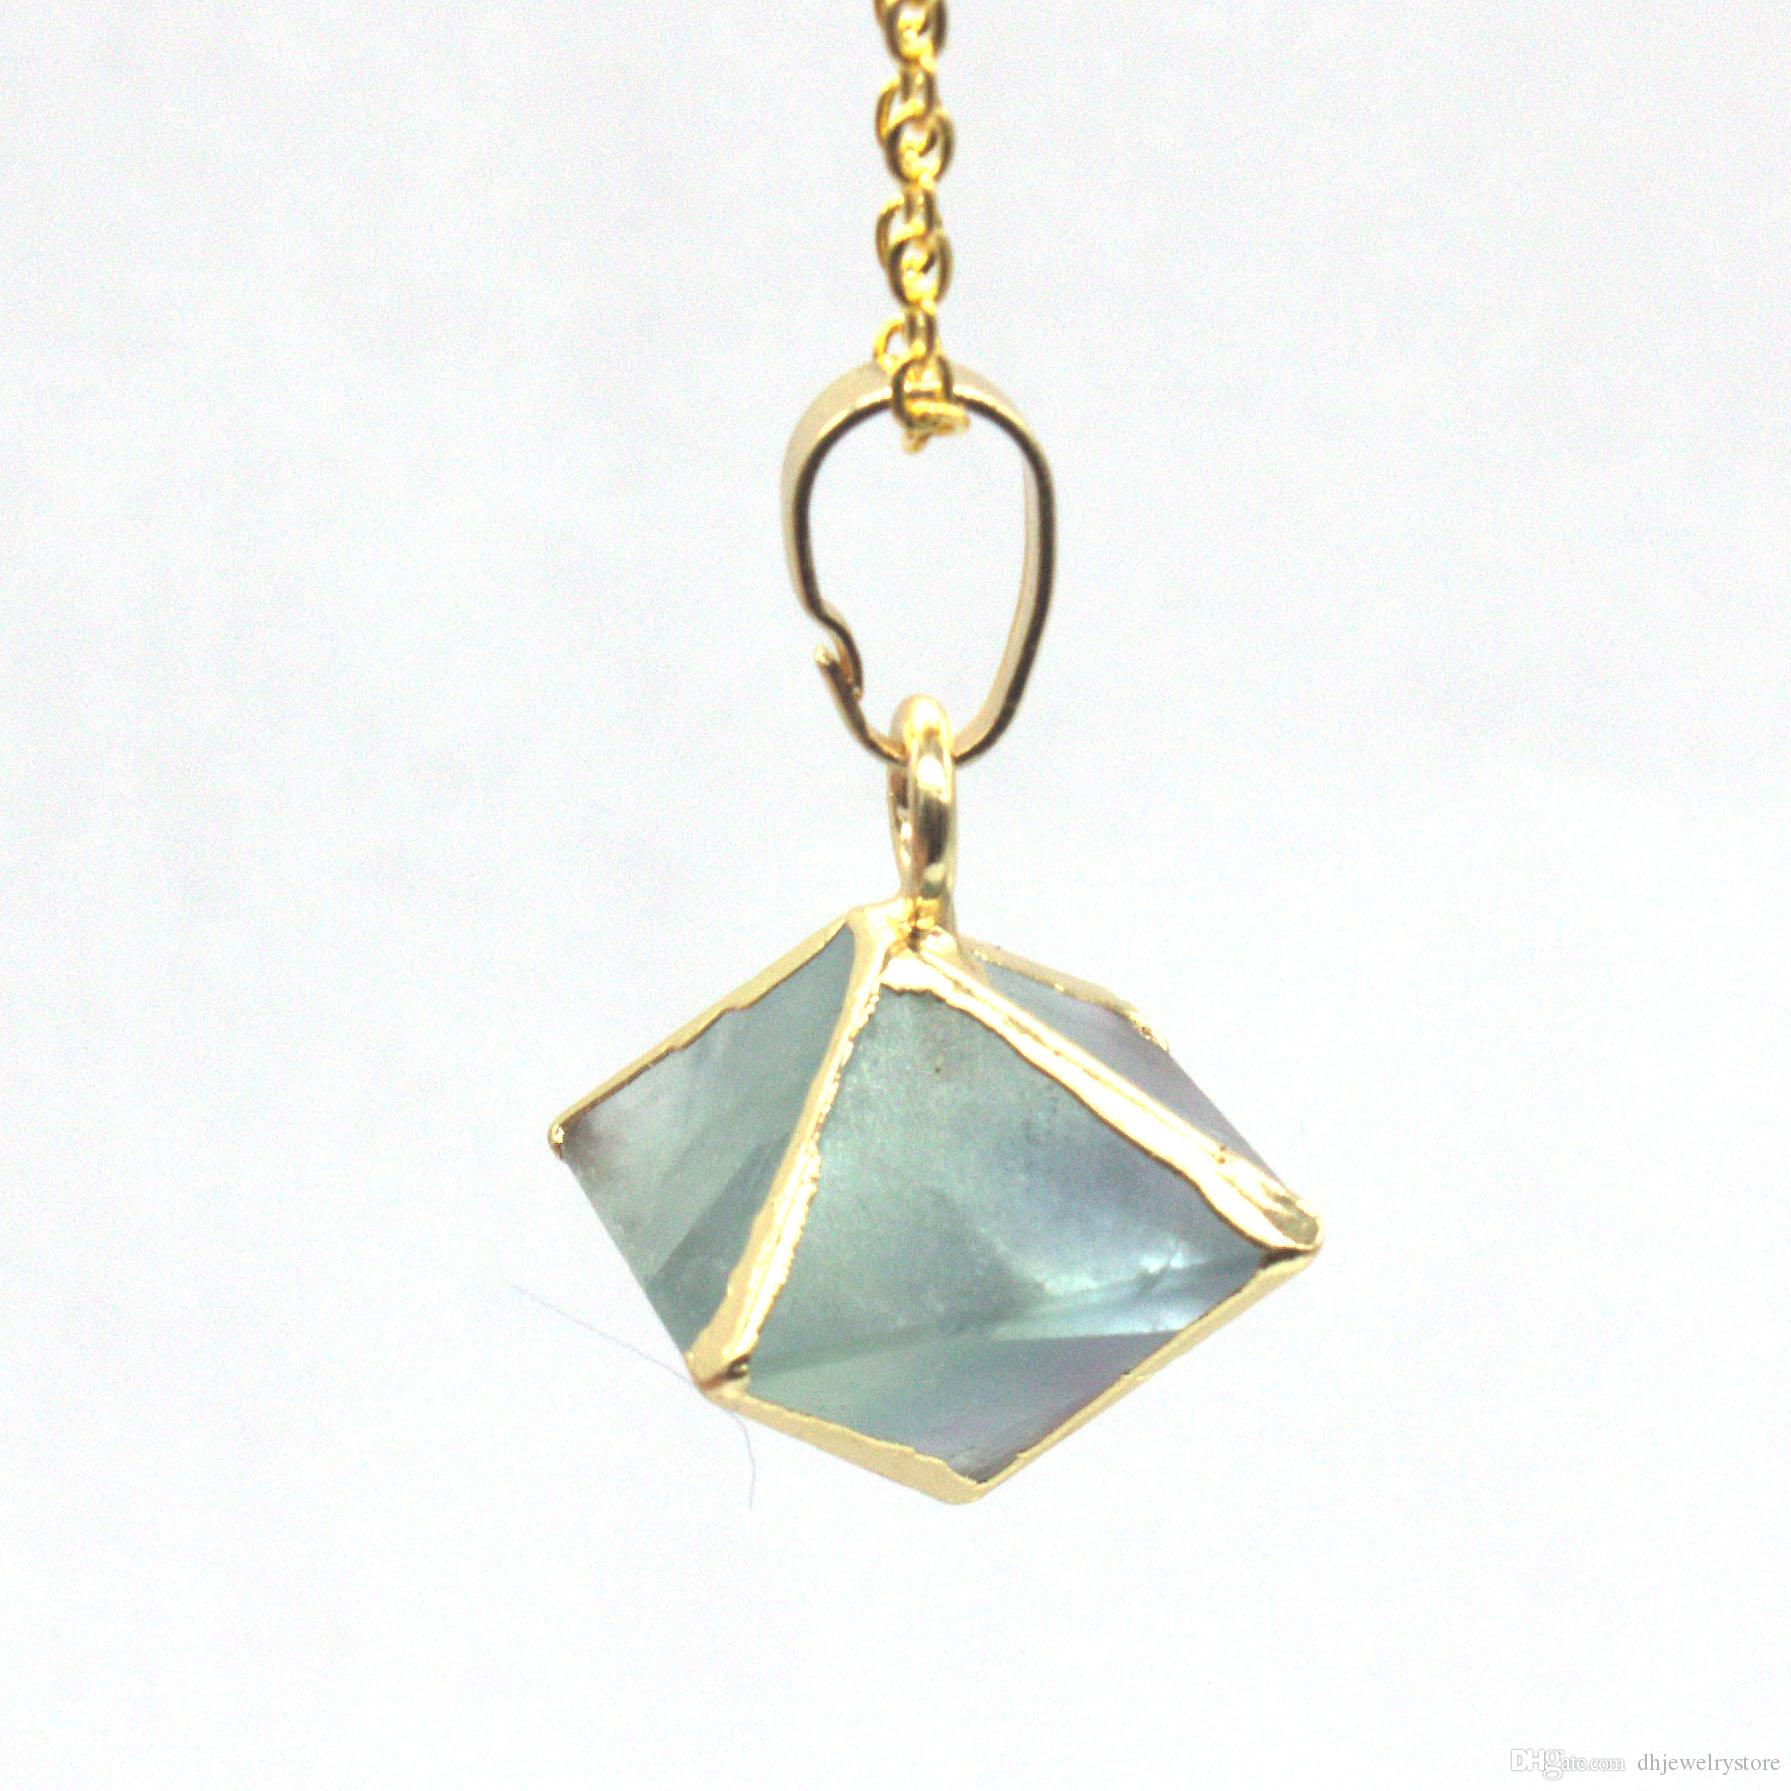 Wholesale Trendy Gold Plated Square Pyramid Green Turquoise Pendant Necklace Link Chain Amethyst Jewelry